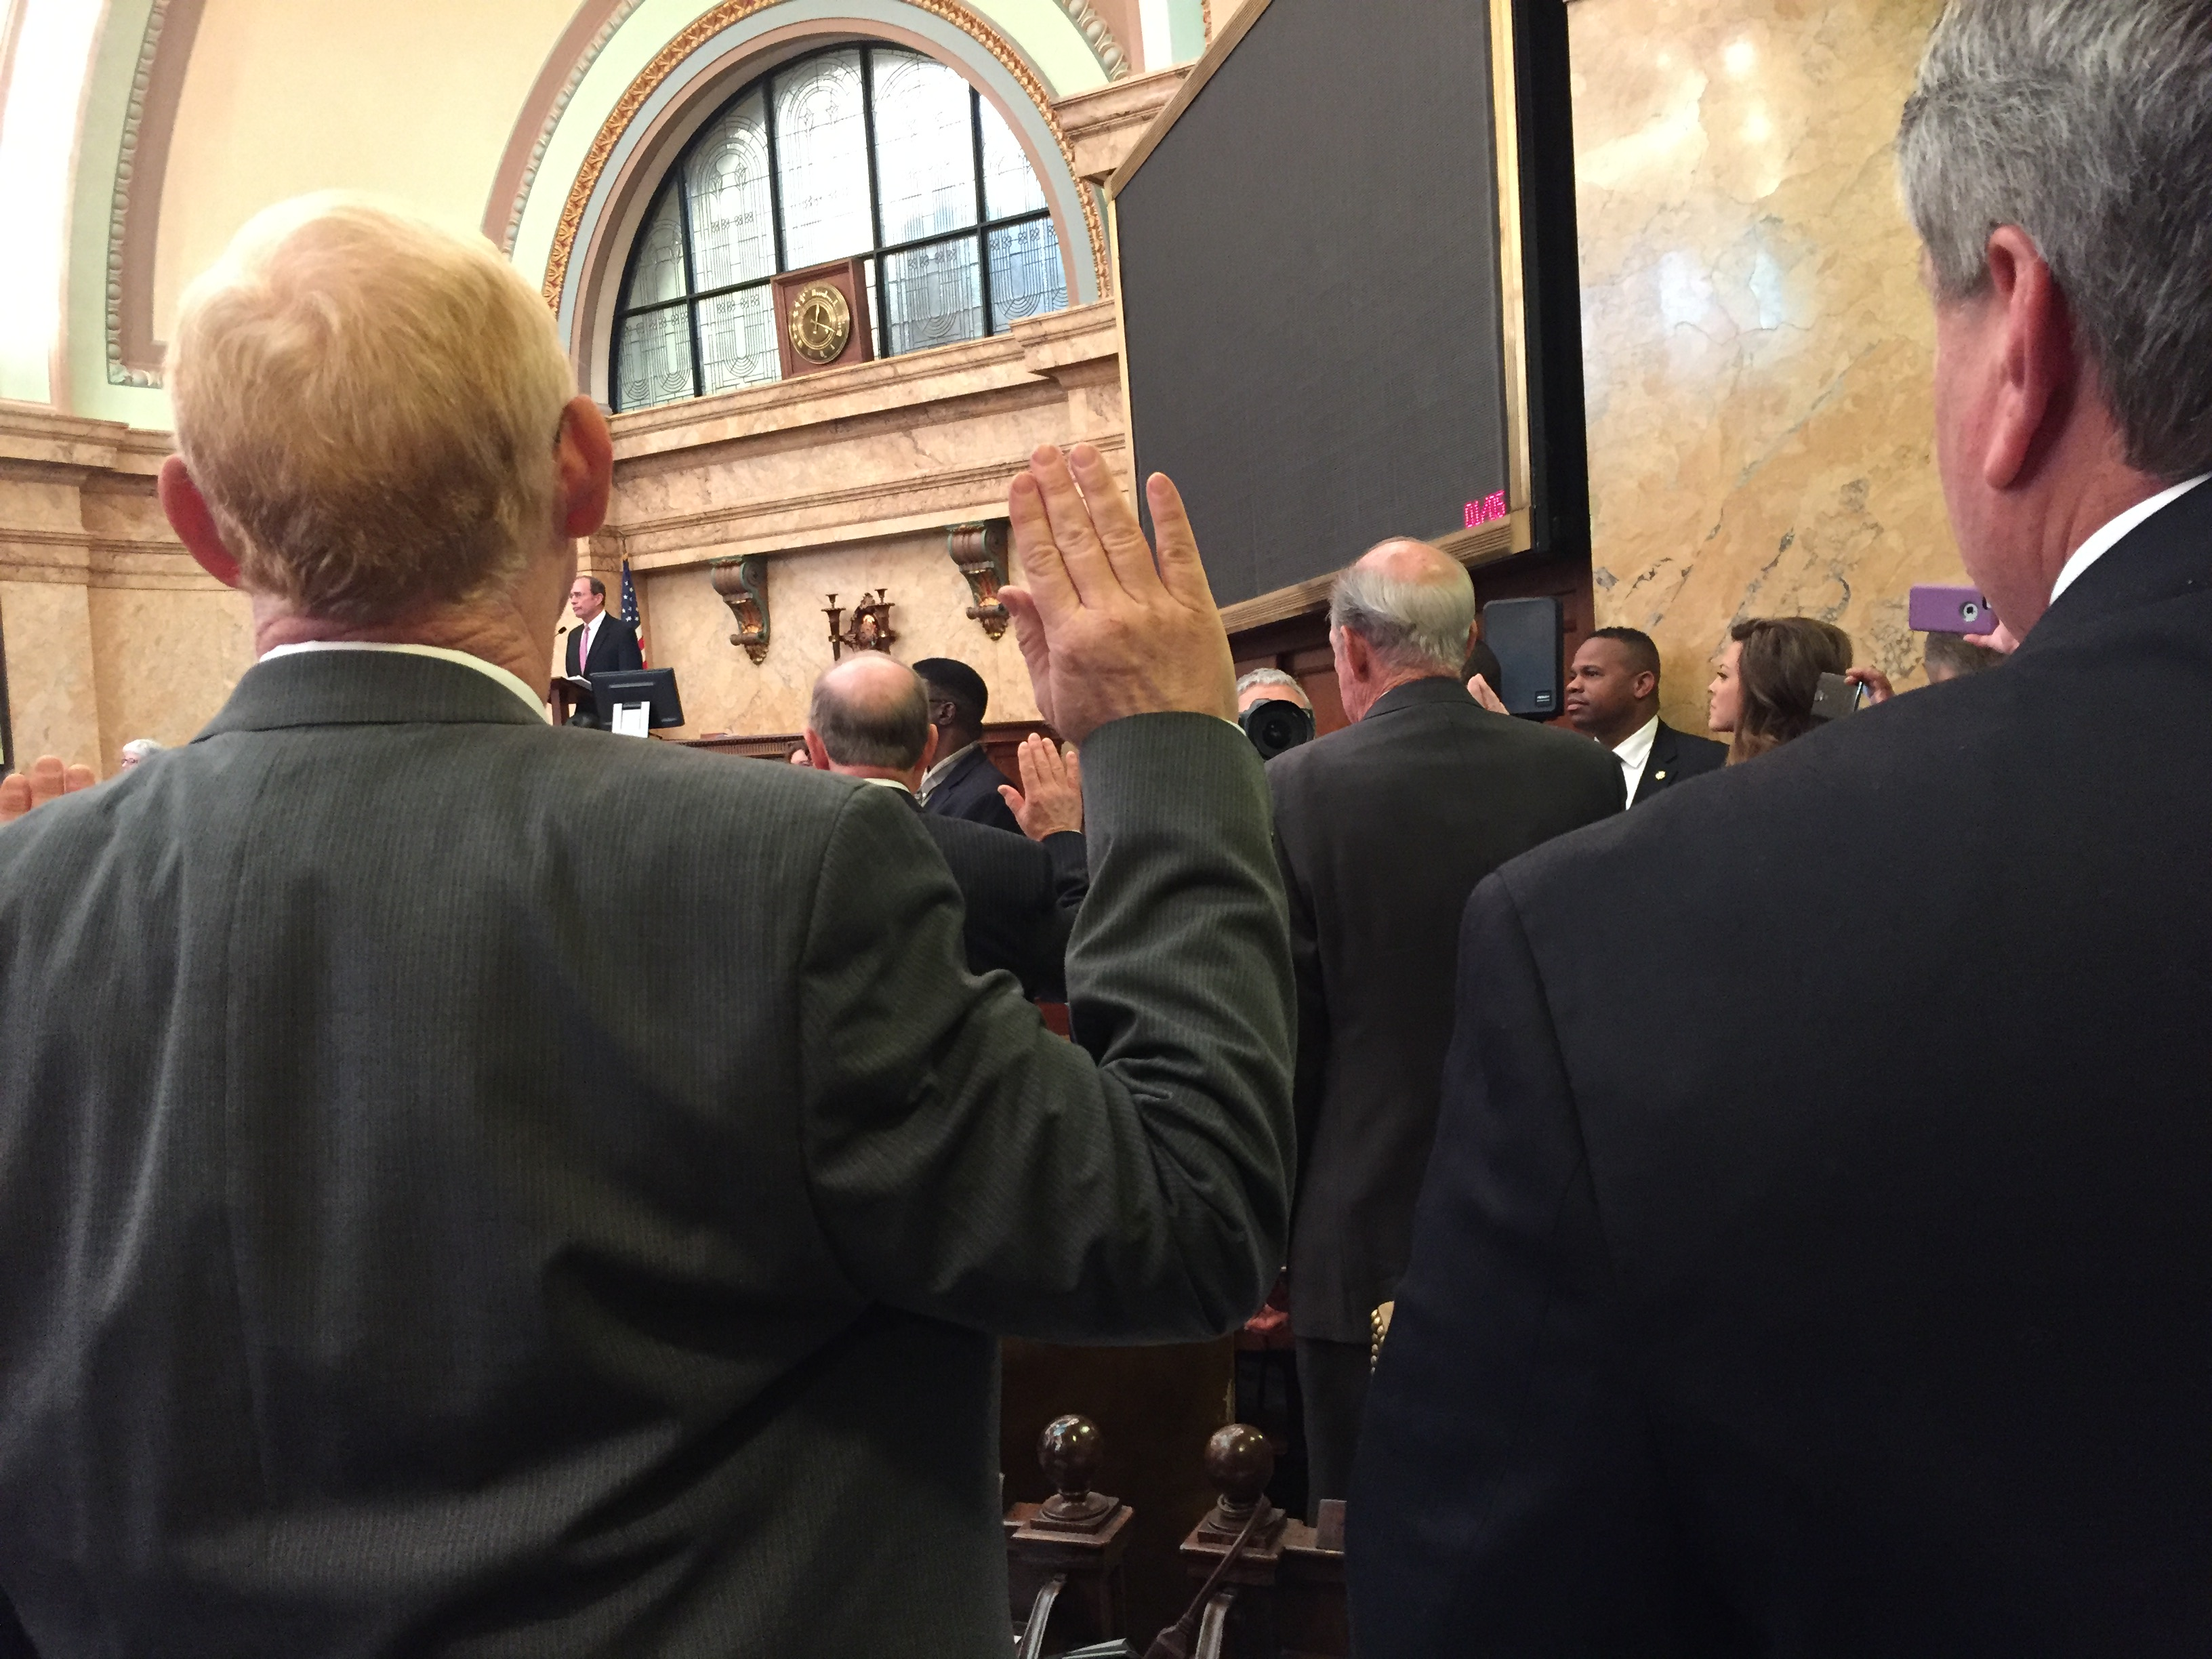 Desoto County Representatives Dana Criswell and Steve Hopkins take the Oath of Office